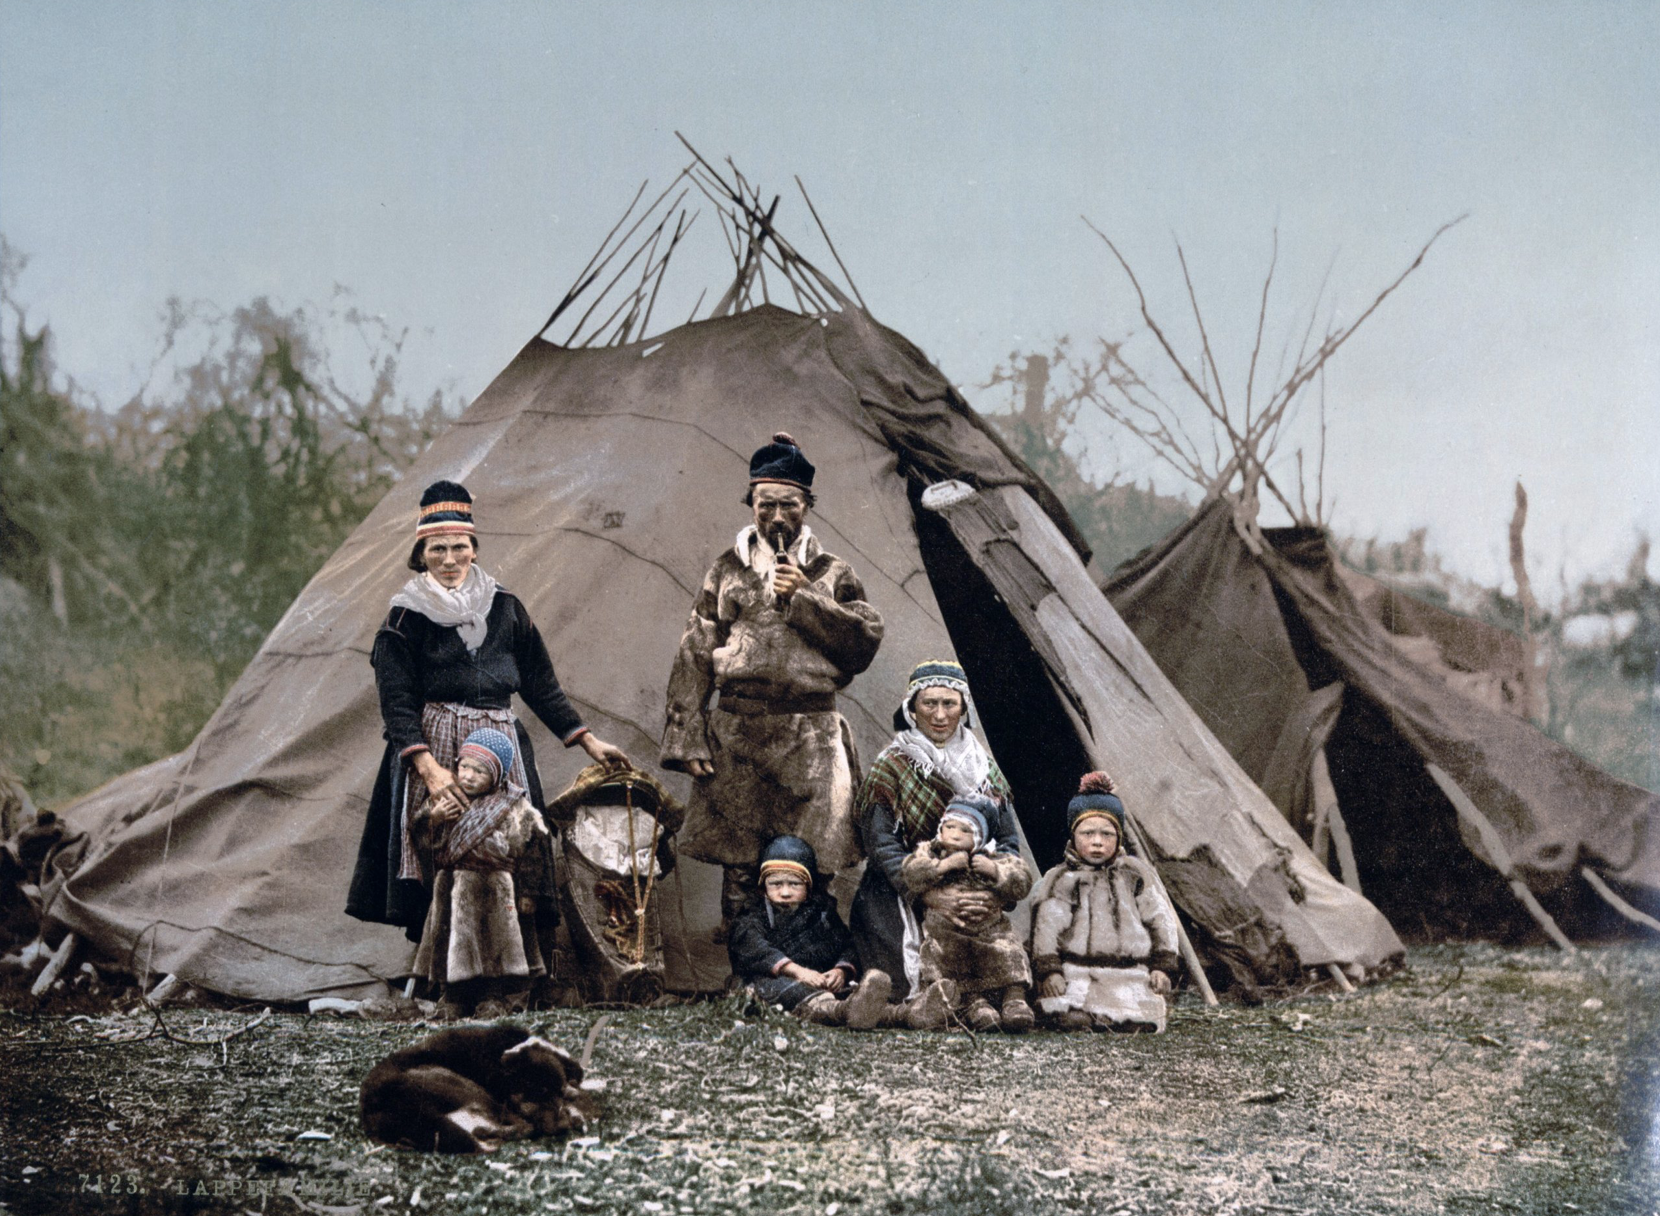 A Sami family in front of a goahti in the foreground and a lavvu in the background (the picture is taken around 1900). (Public domain: United States Library of Congress's Prints and Photographs division).